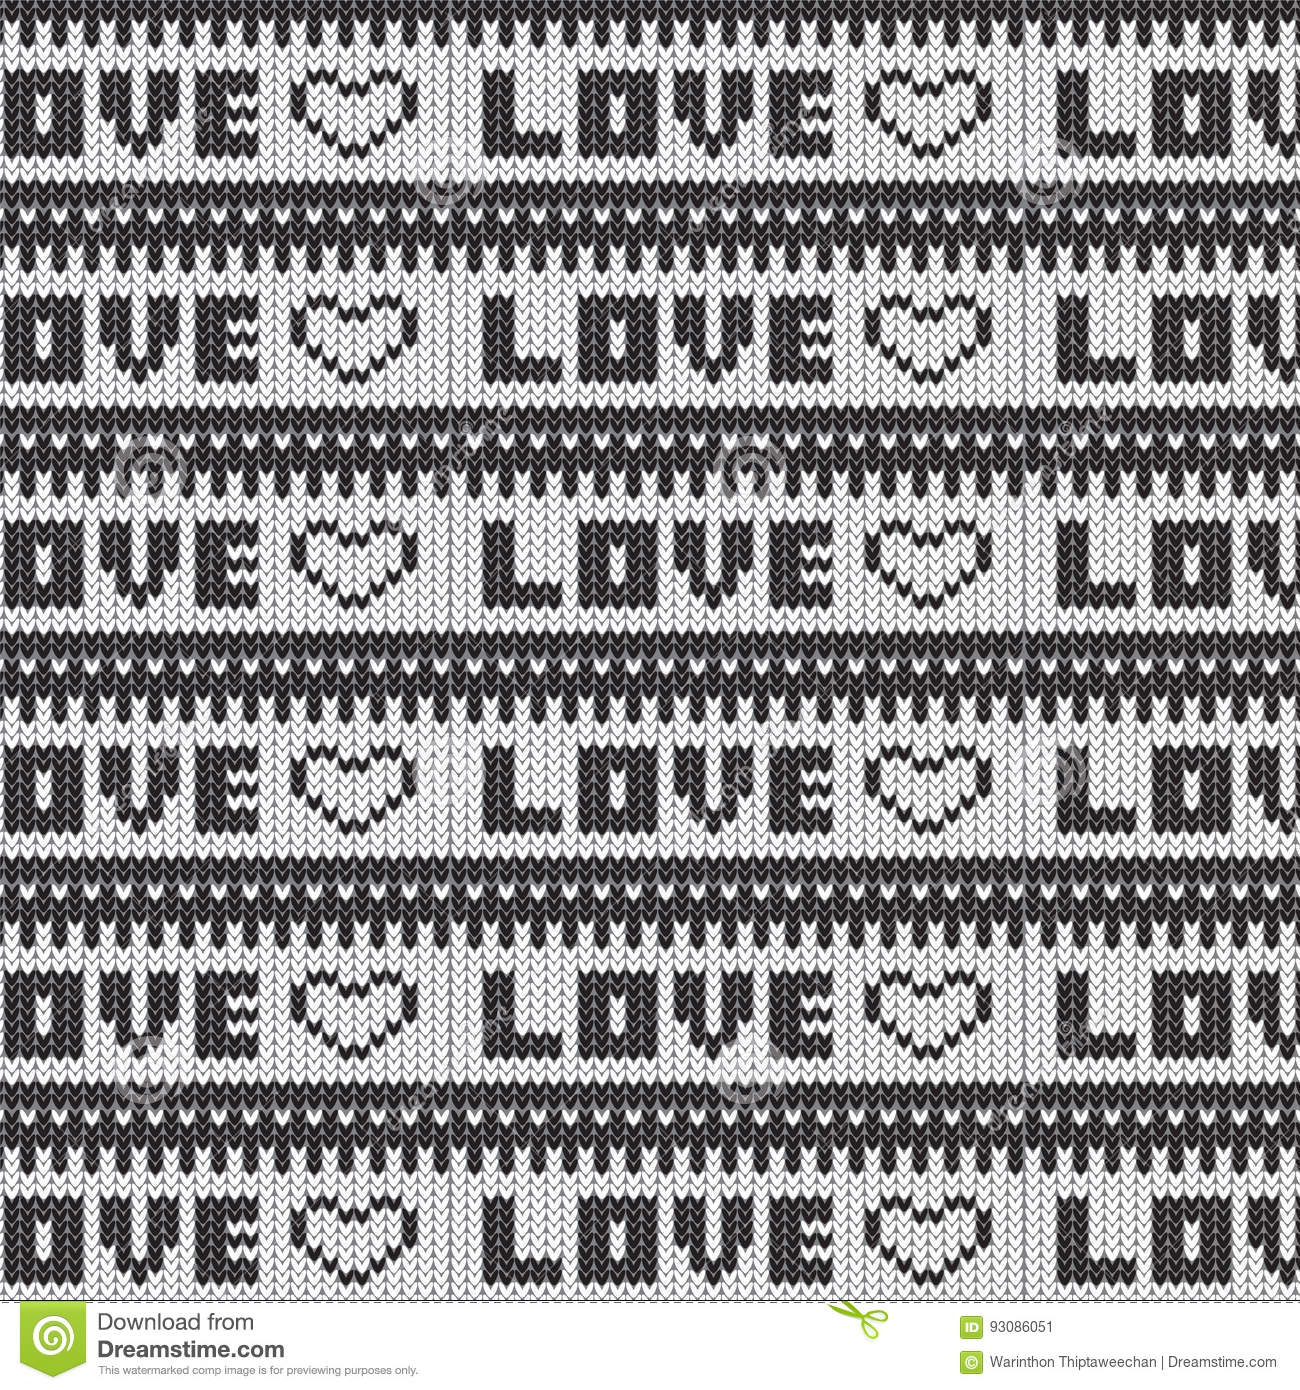 Black And White Love Heart Striped Knitted Pattern Background Stock ...